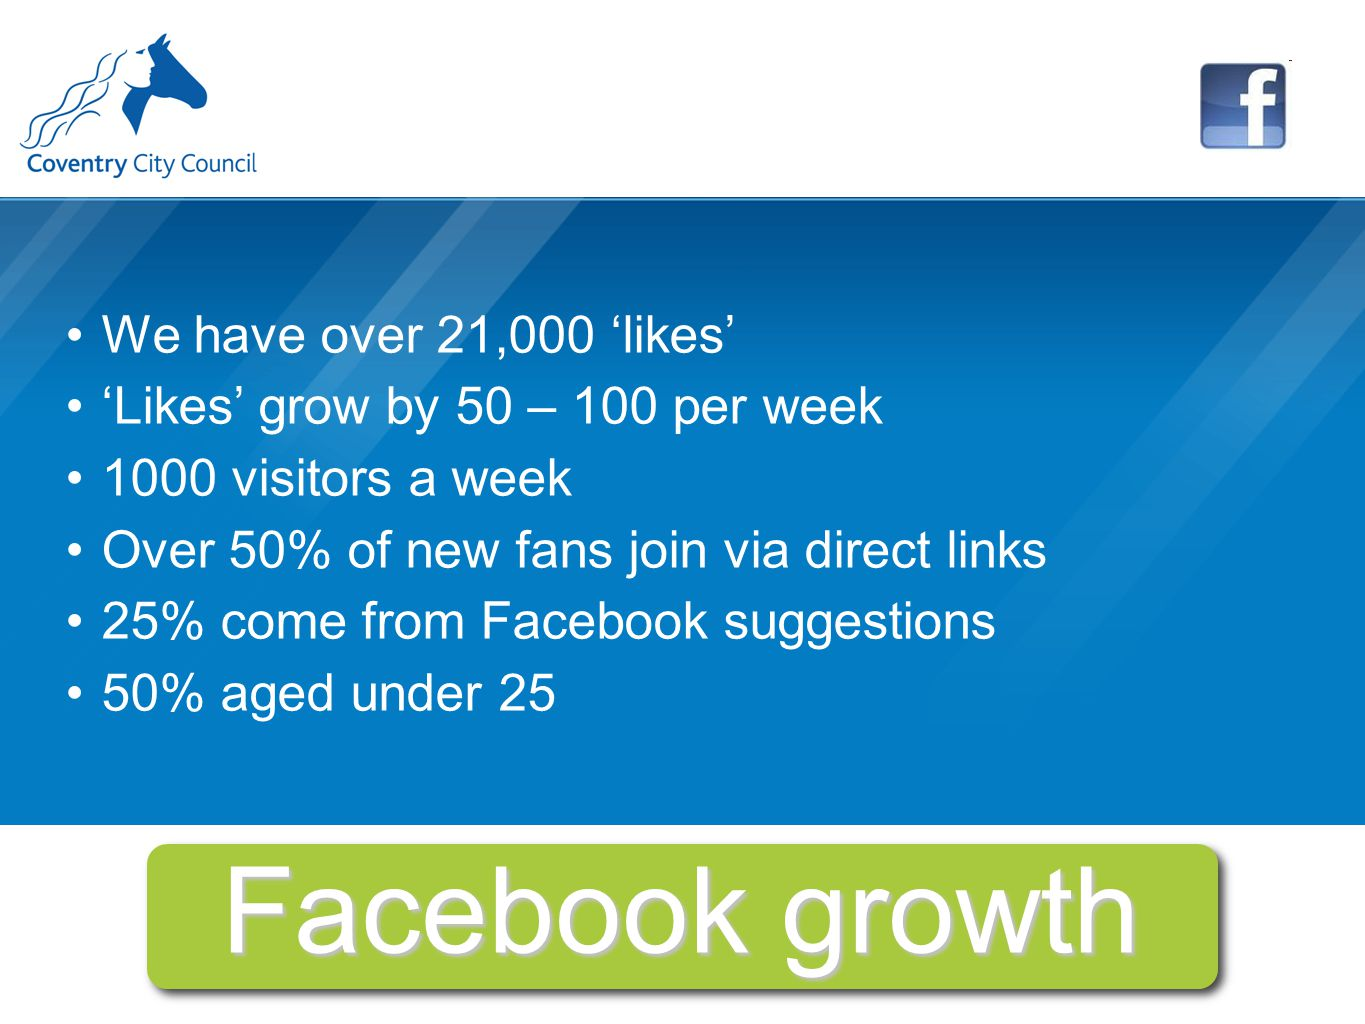 Facebook growth We have over 21,000 'likes' 'Likes' grow by 50 – 100 per week 1000 visitors a week Over 50% of new fans join via direct links 25% come from Facebook suggestions 50% aged under 25